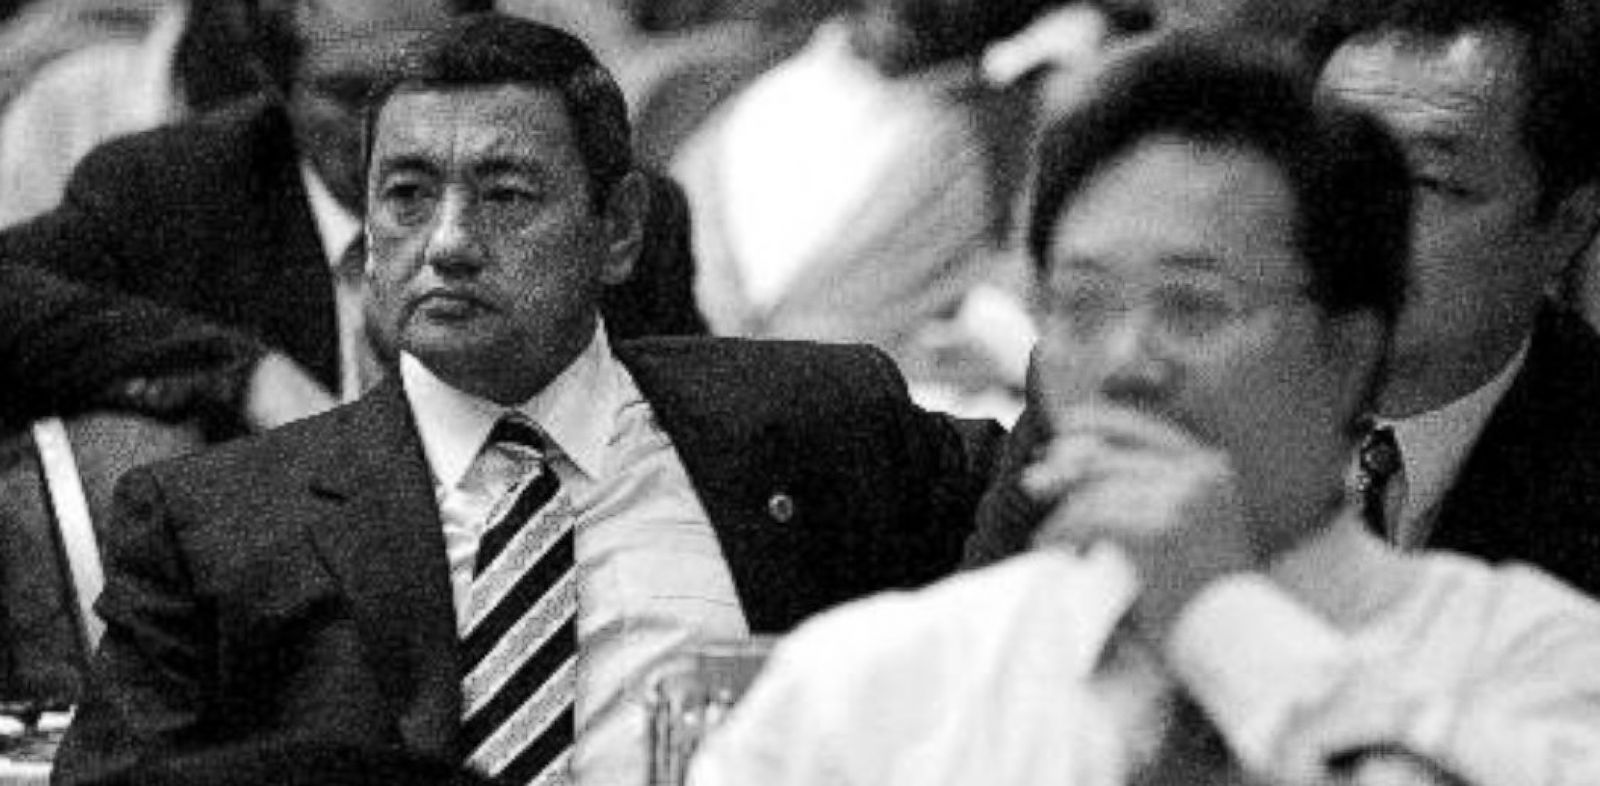 PHOTO: Uzbekistan delegate Gafur Rakhimov, left, during a sports congress in Ankara, Turley, November 1998.